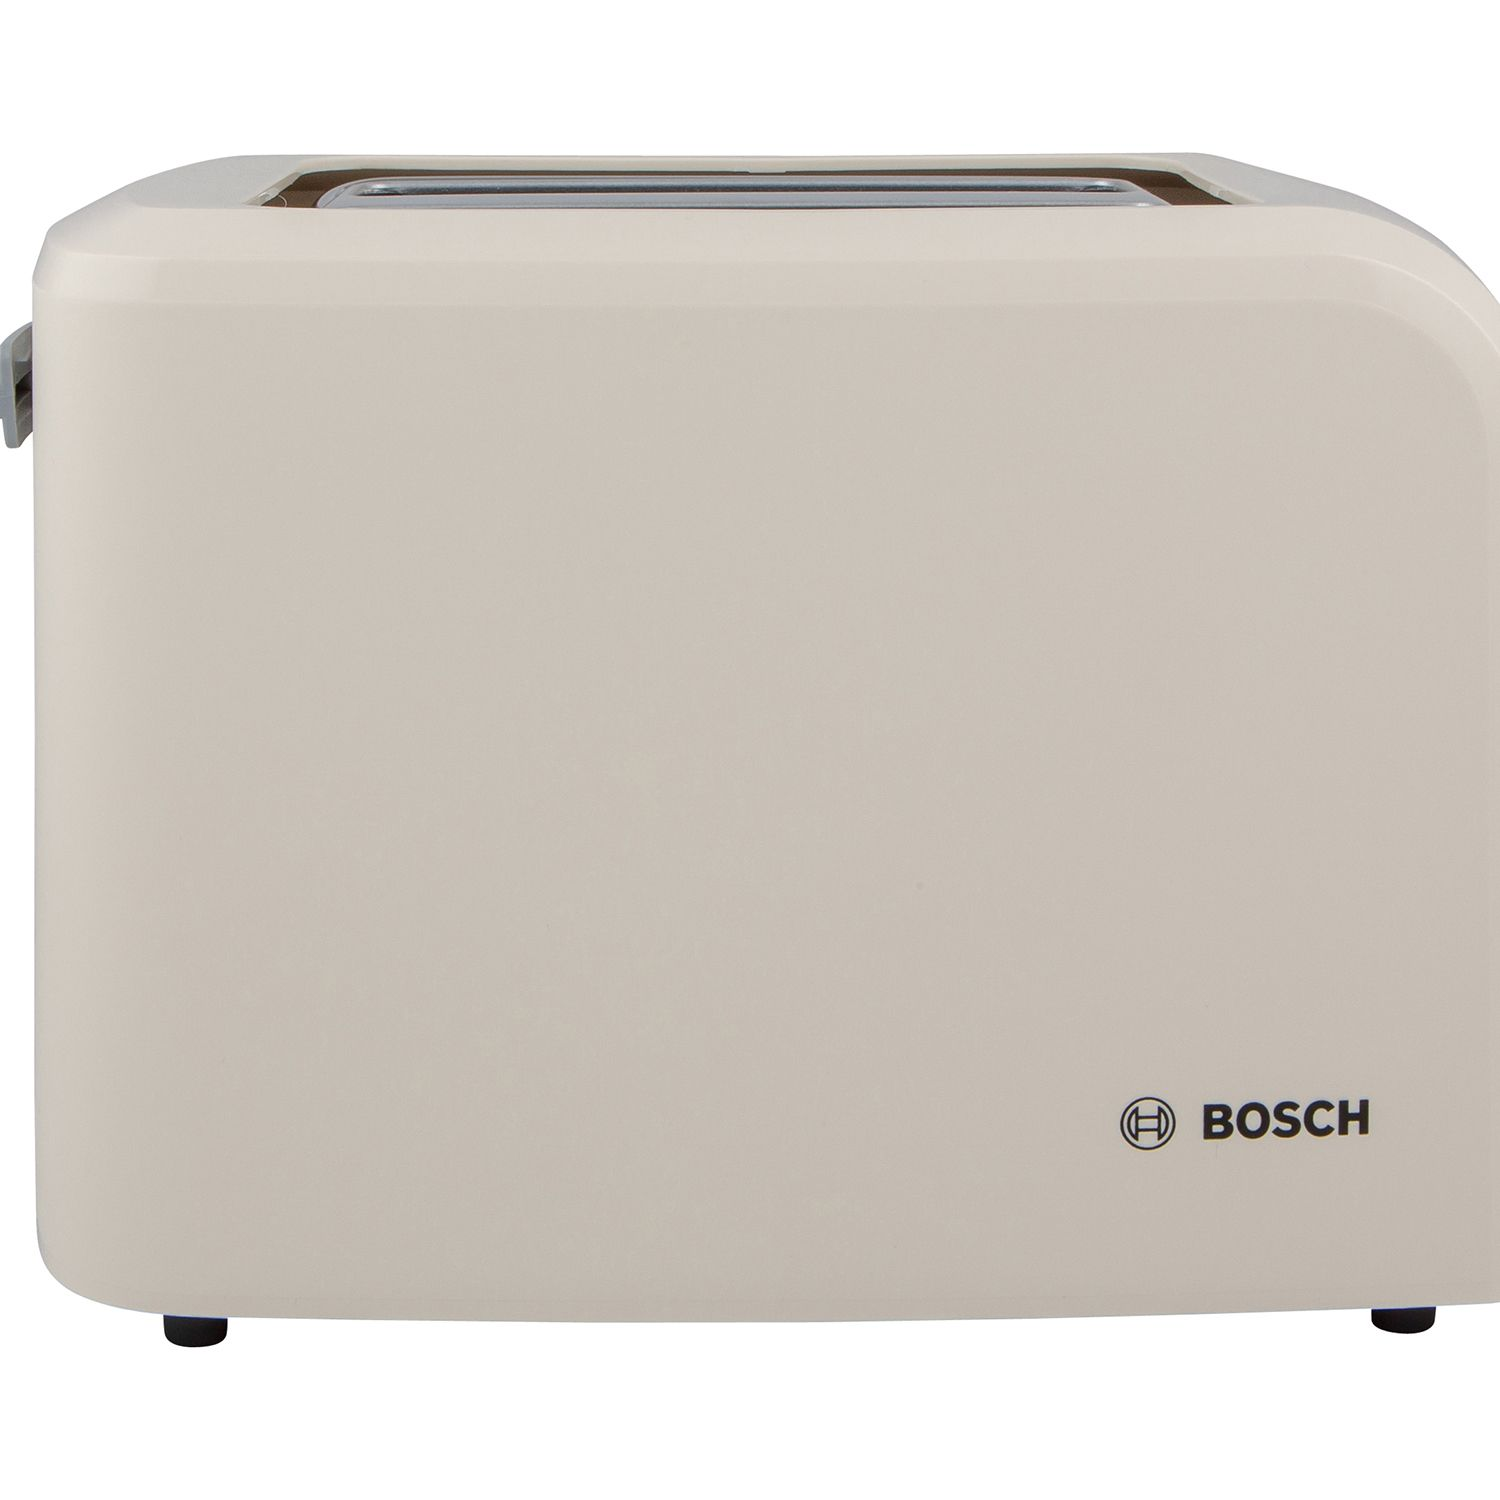 Bosch 2 Slice Toaster. Features a defrost control and an option to re-toast cold slices. Comes with 2 Years Guarantee.